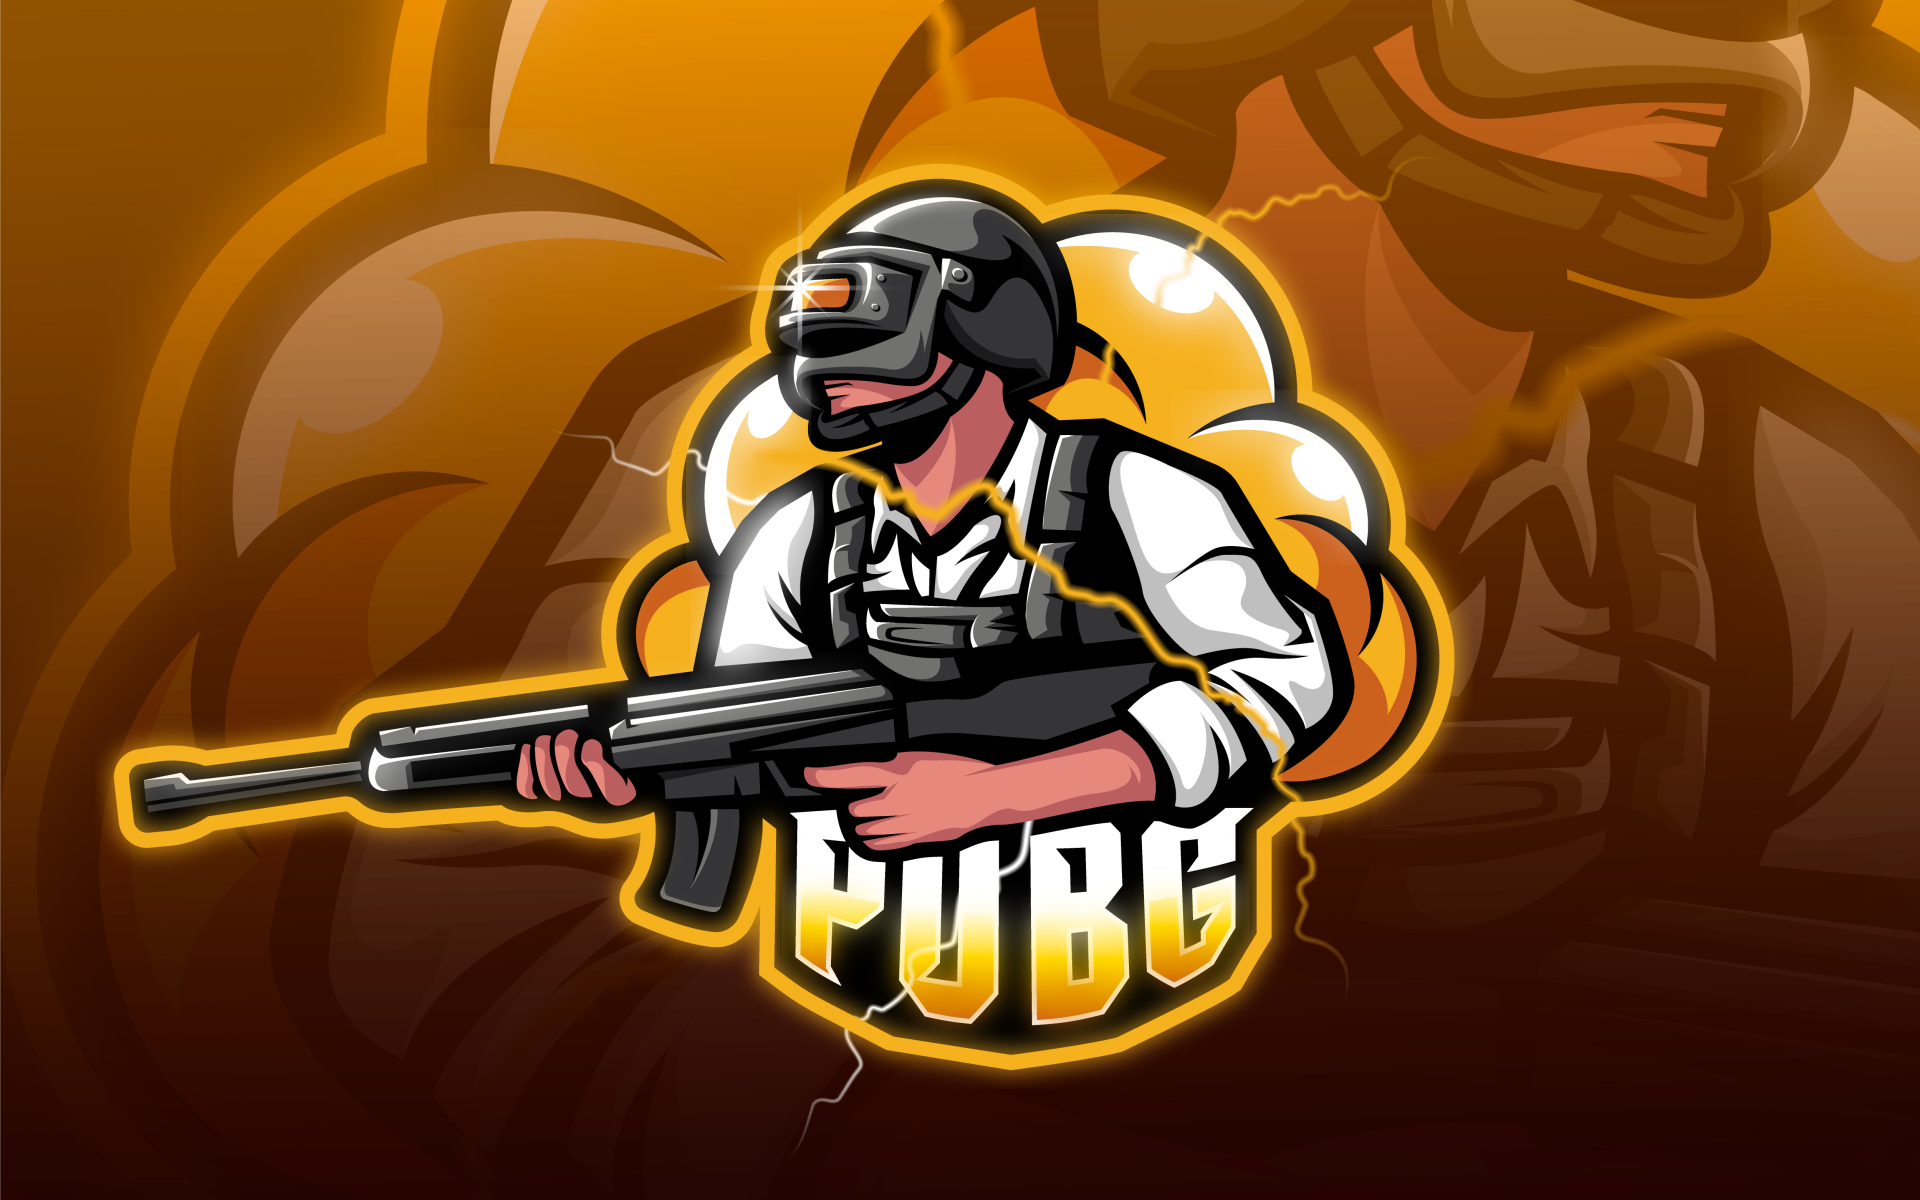 Pubg Wallpaper 4K HD For Mobile and PC